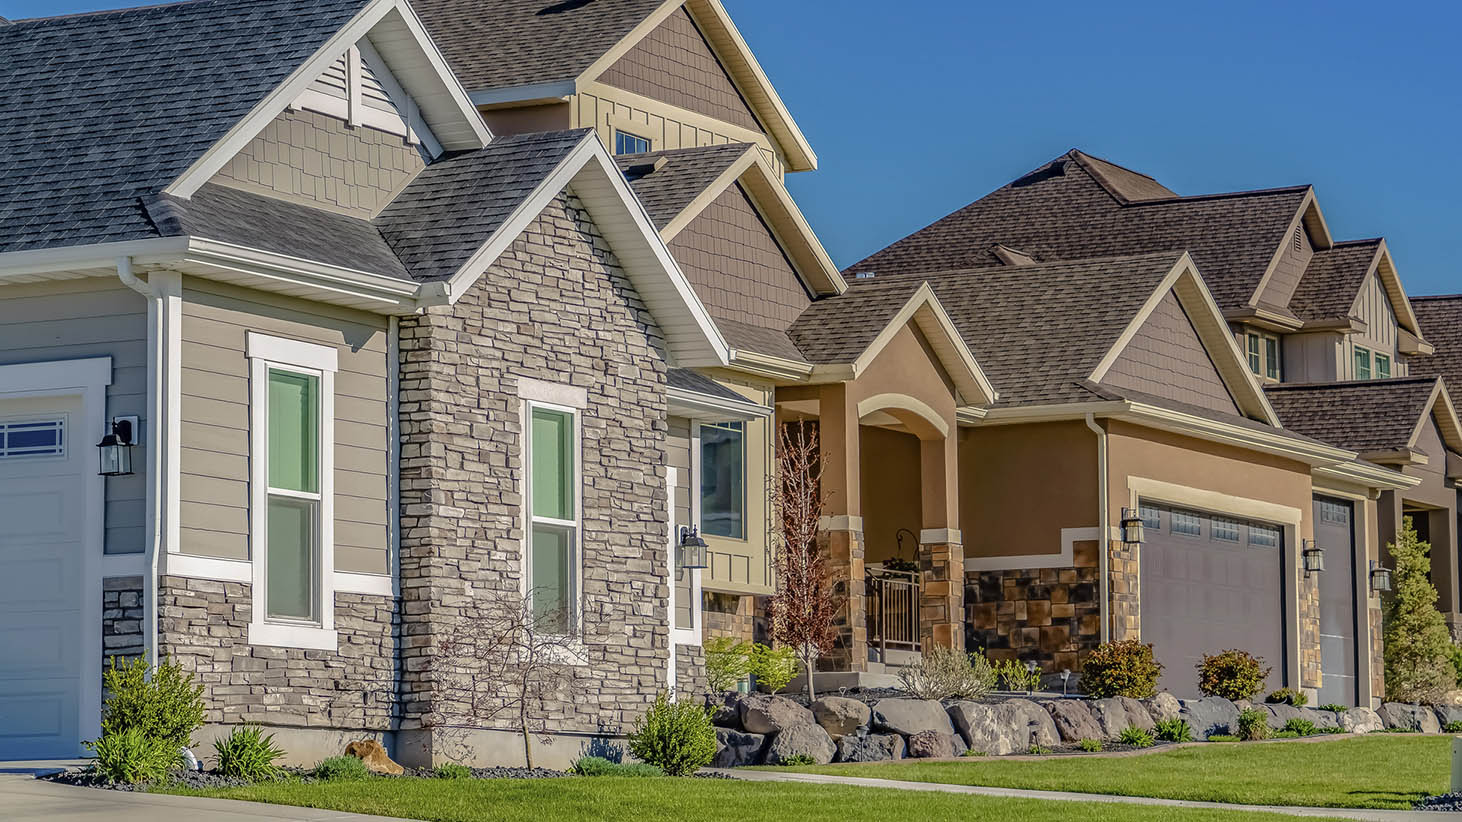 Row of newly constructed houses seen while preforming home inspection services